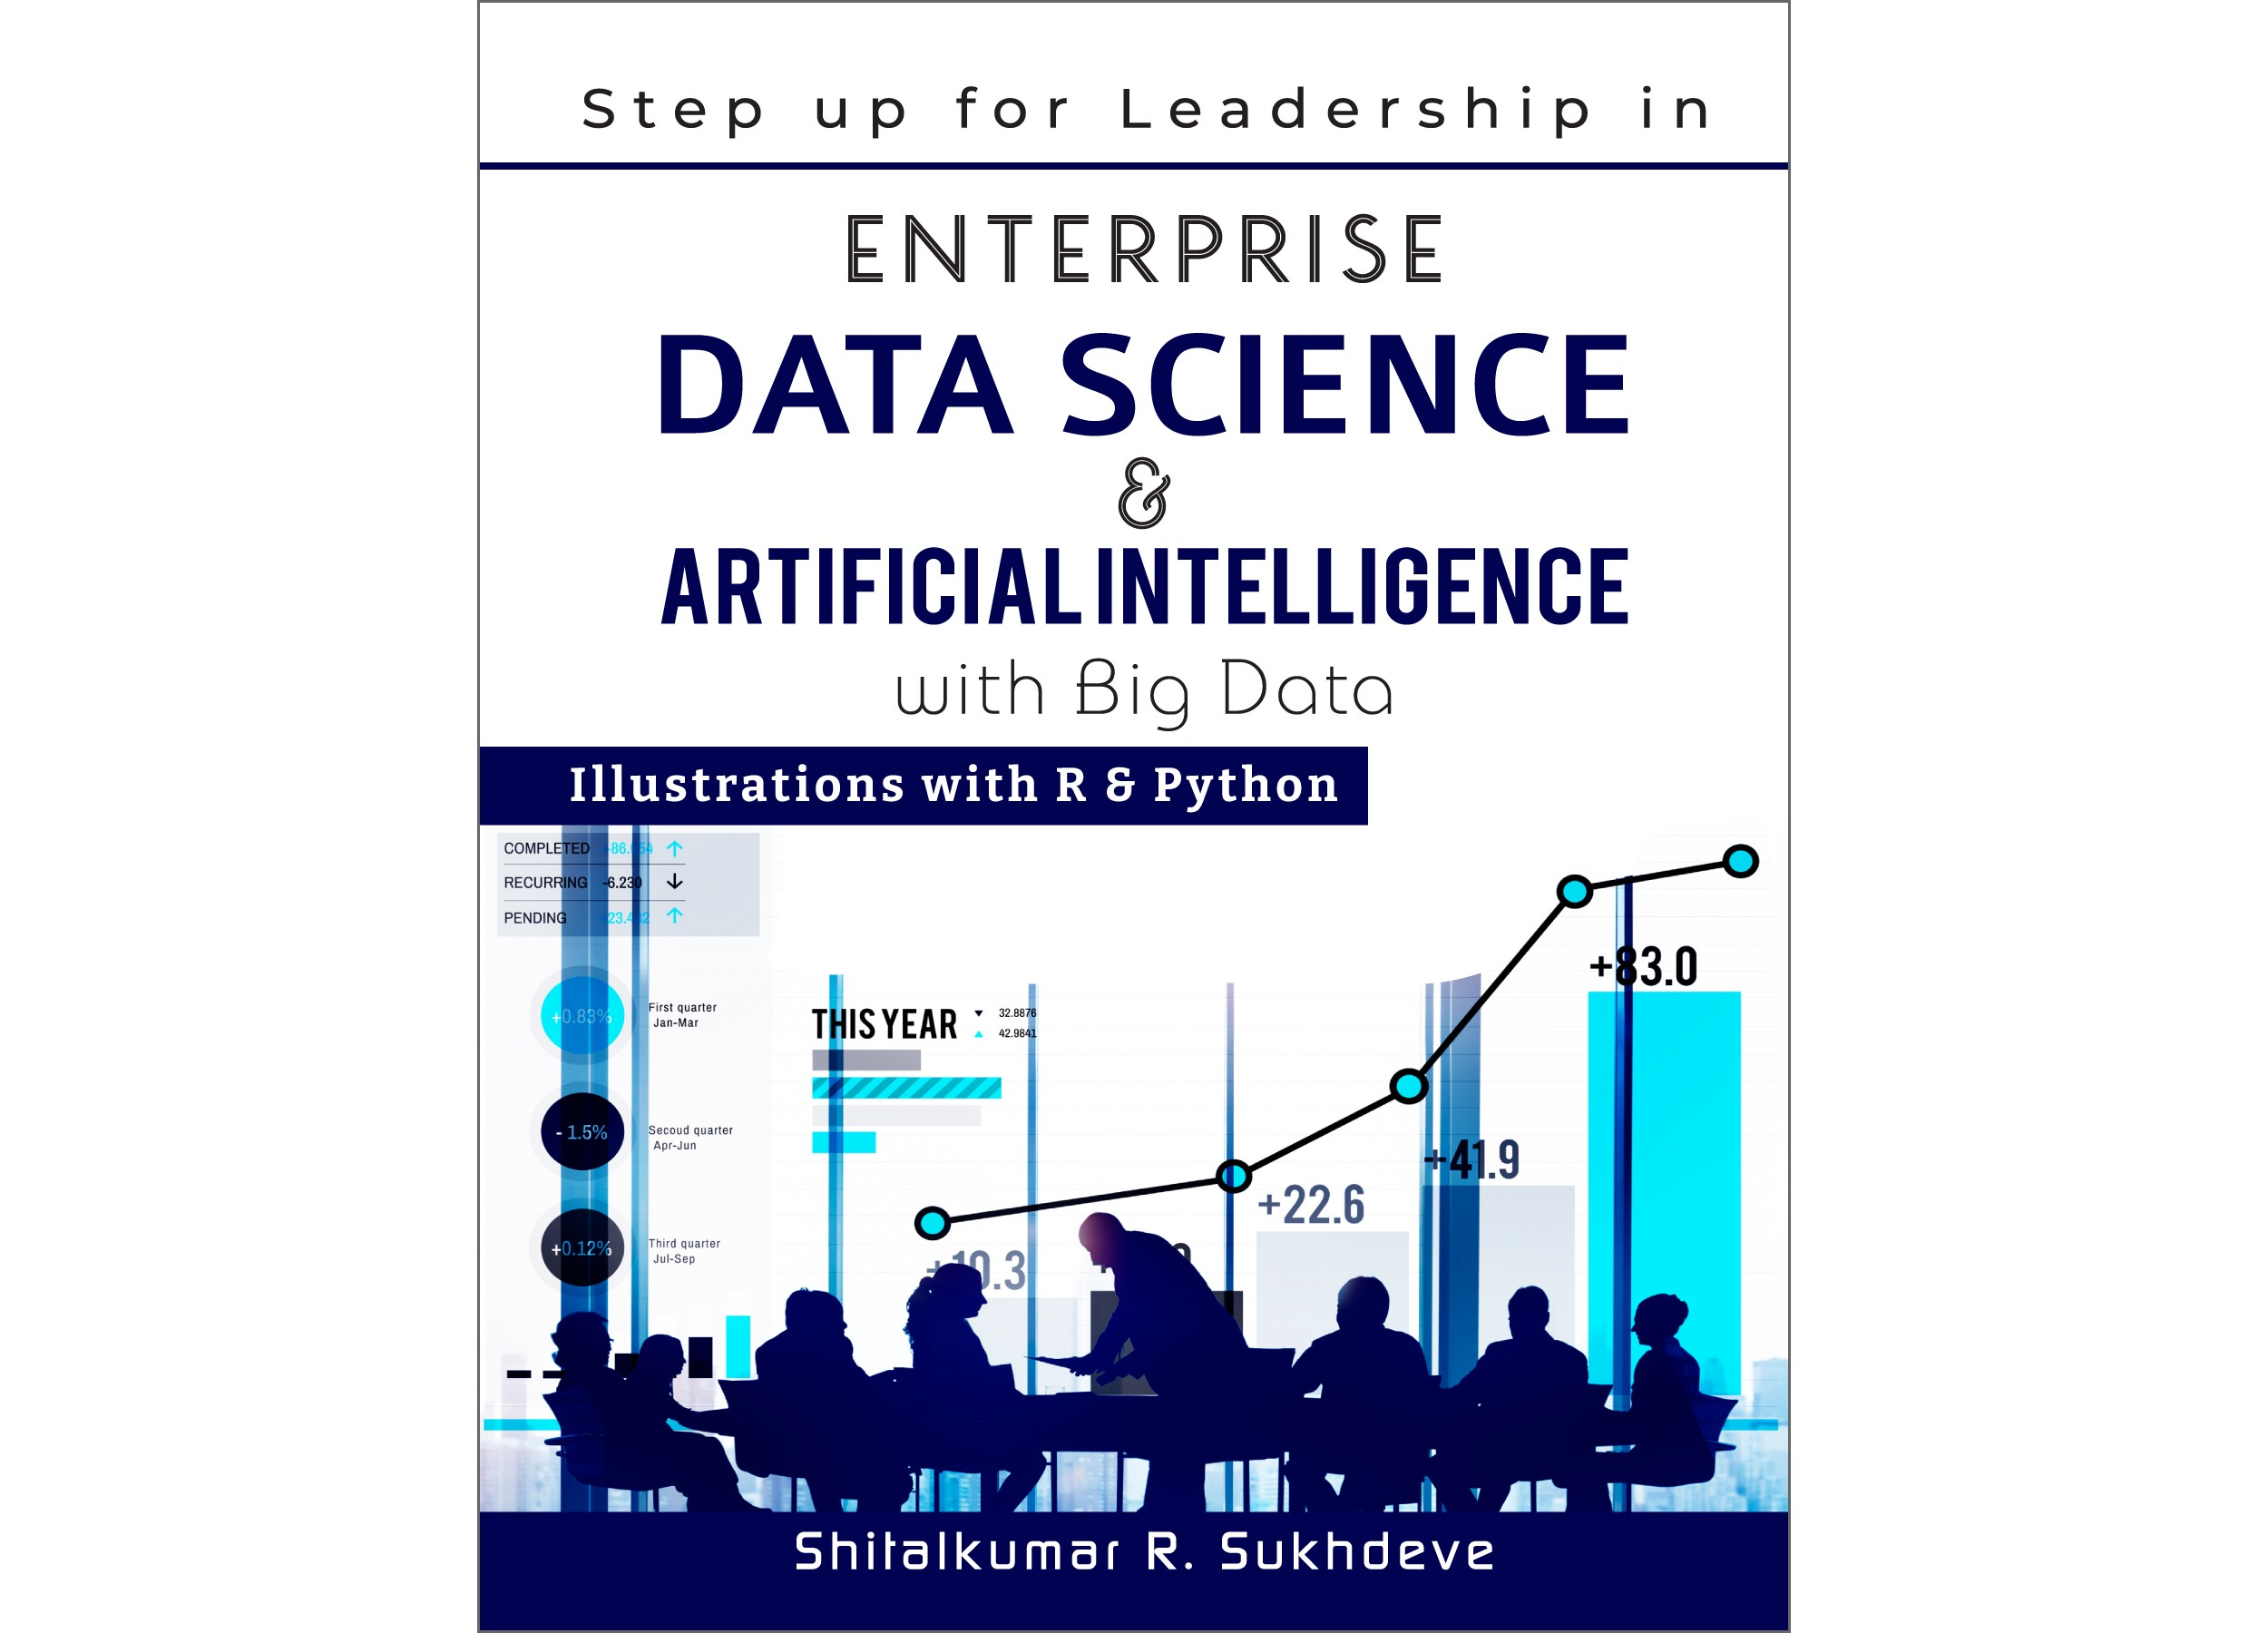 Step up for Leadership in Data Science & Artificial Intelligence with Big Data: Illustrations with R & Python